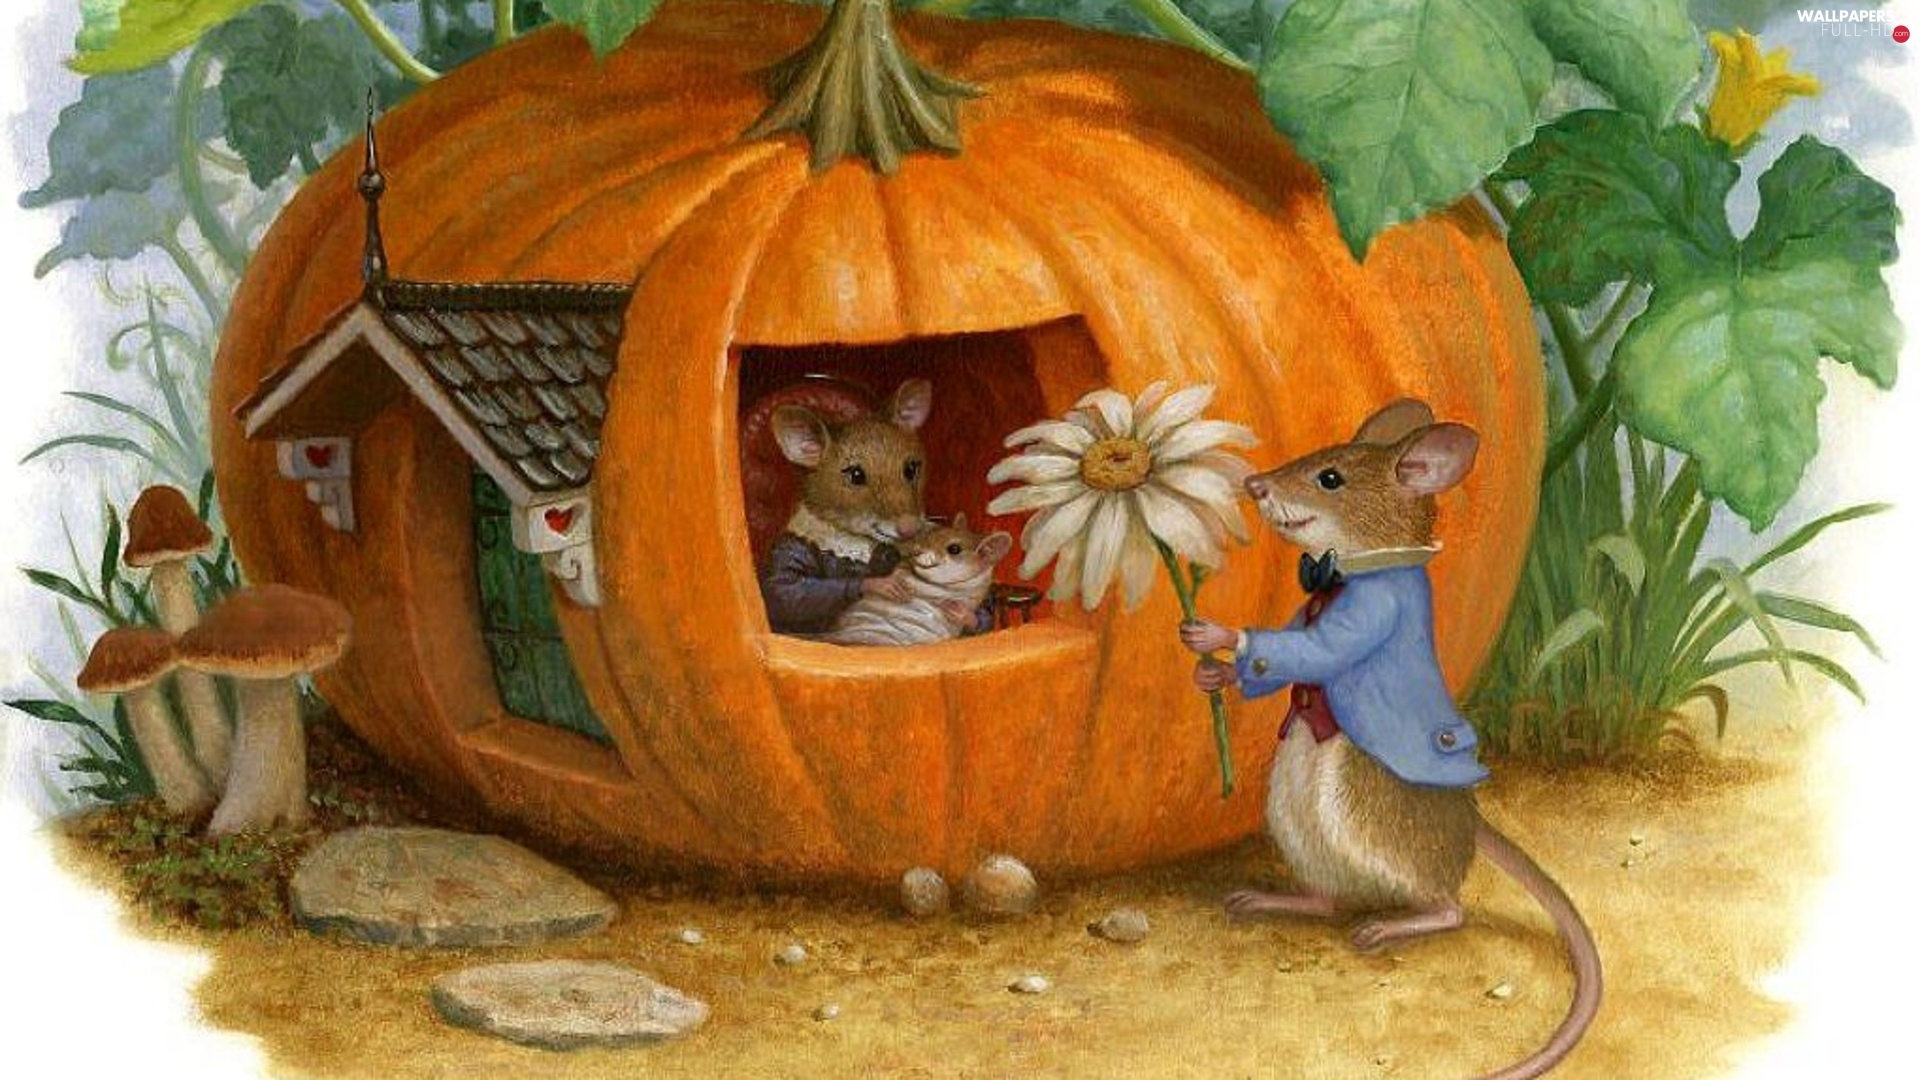 pumpkin, Home, mouse